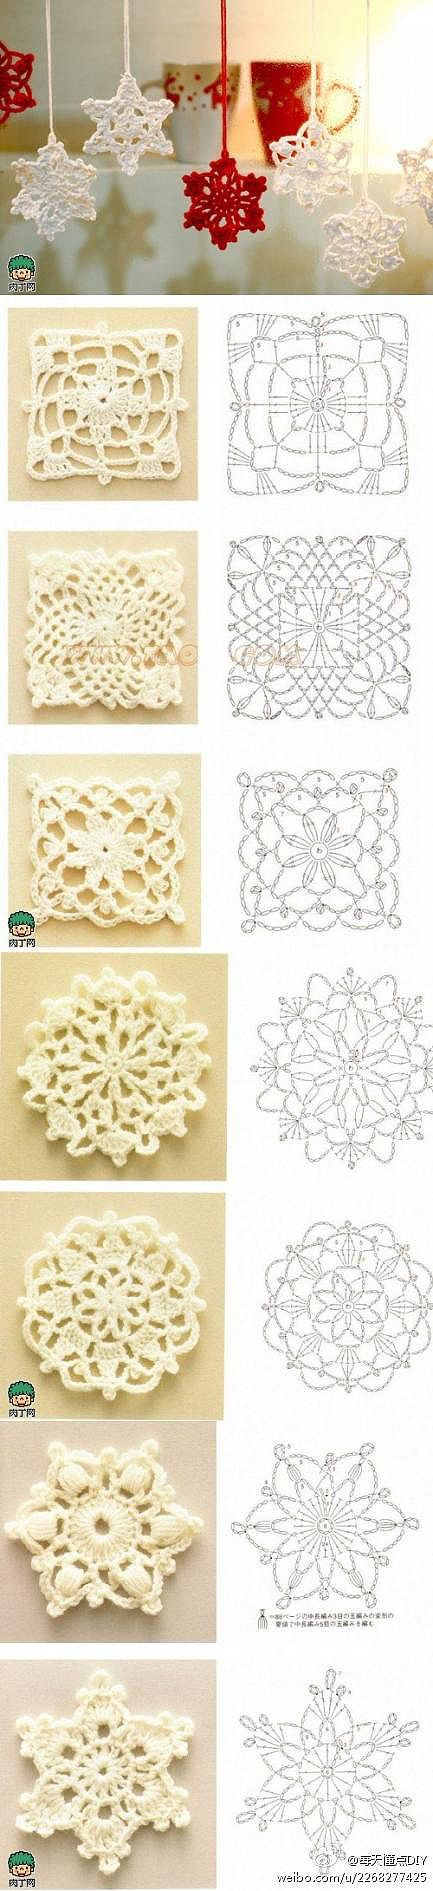 Snowflakes crochet patterns